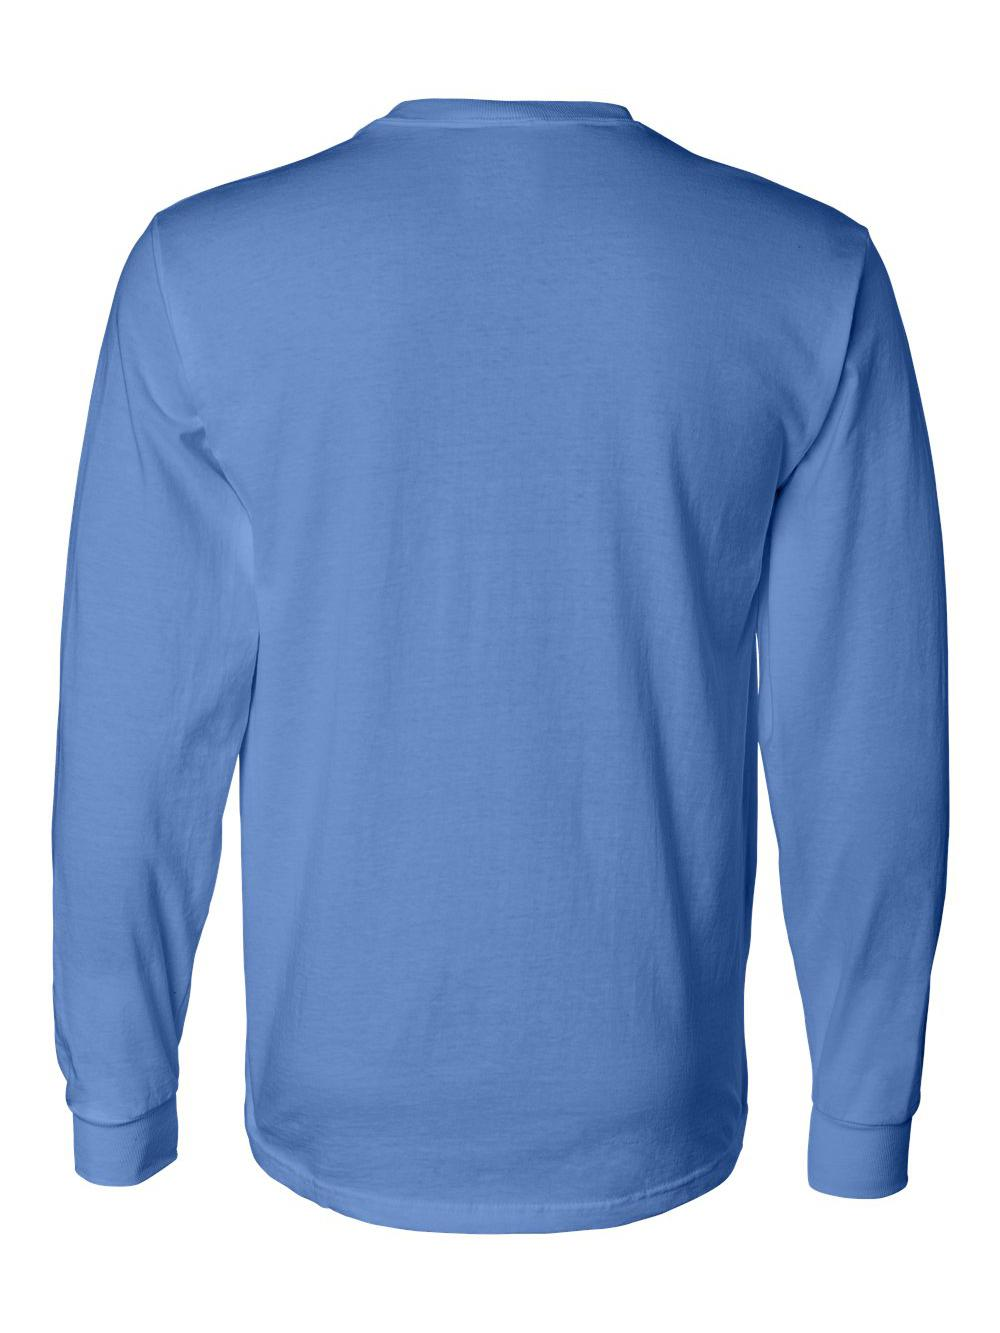 Fruit-of-the-Loom-HD-Cotton-Long-Sleeve-T-Shirt-4930R thumbnail 28